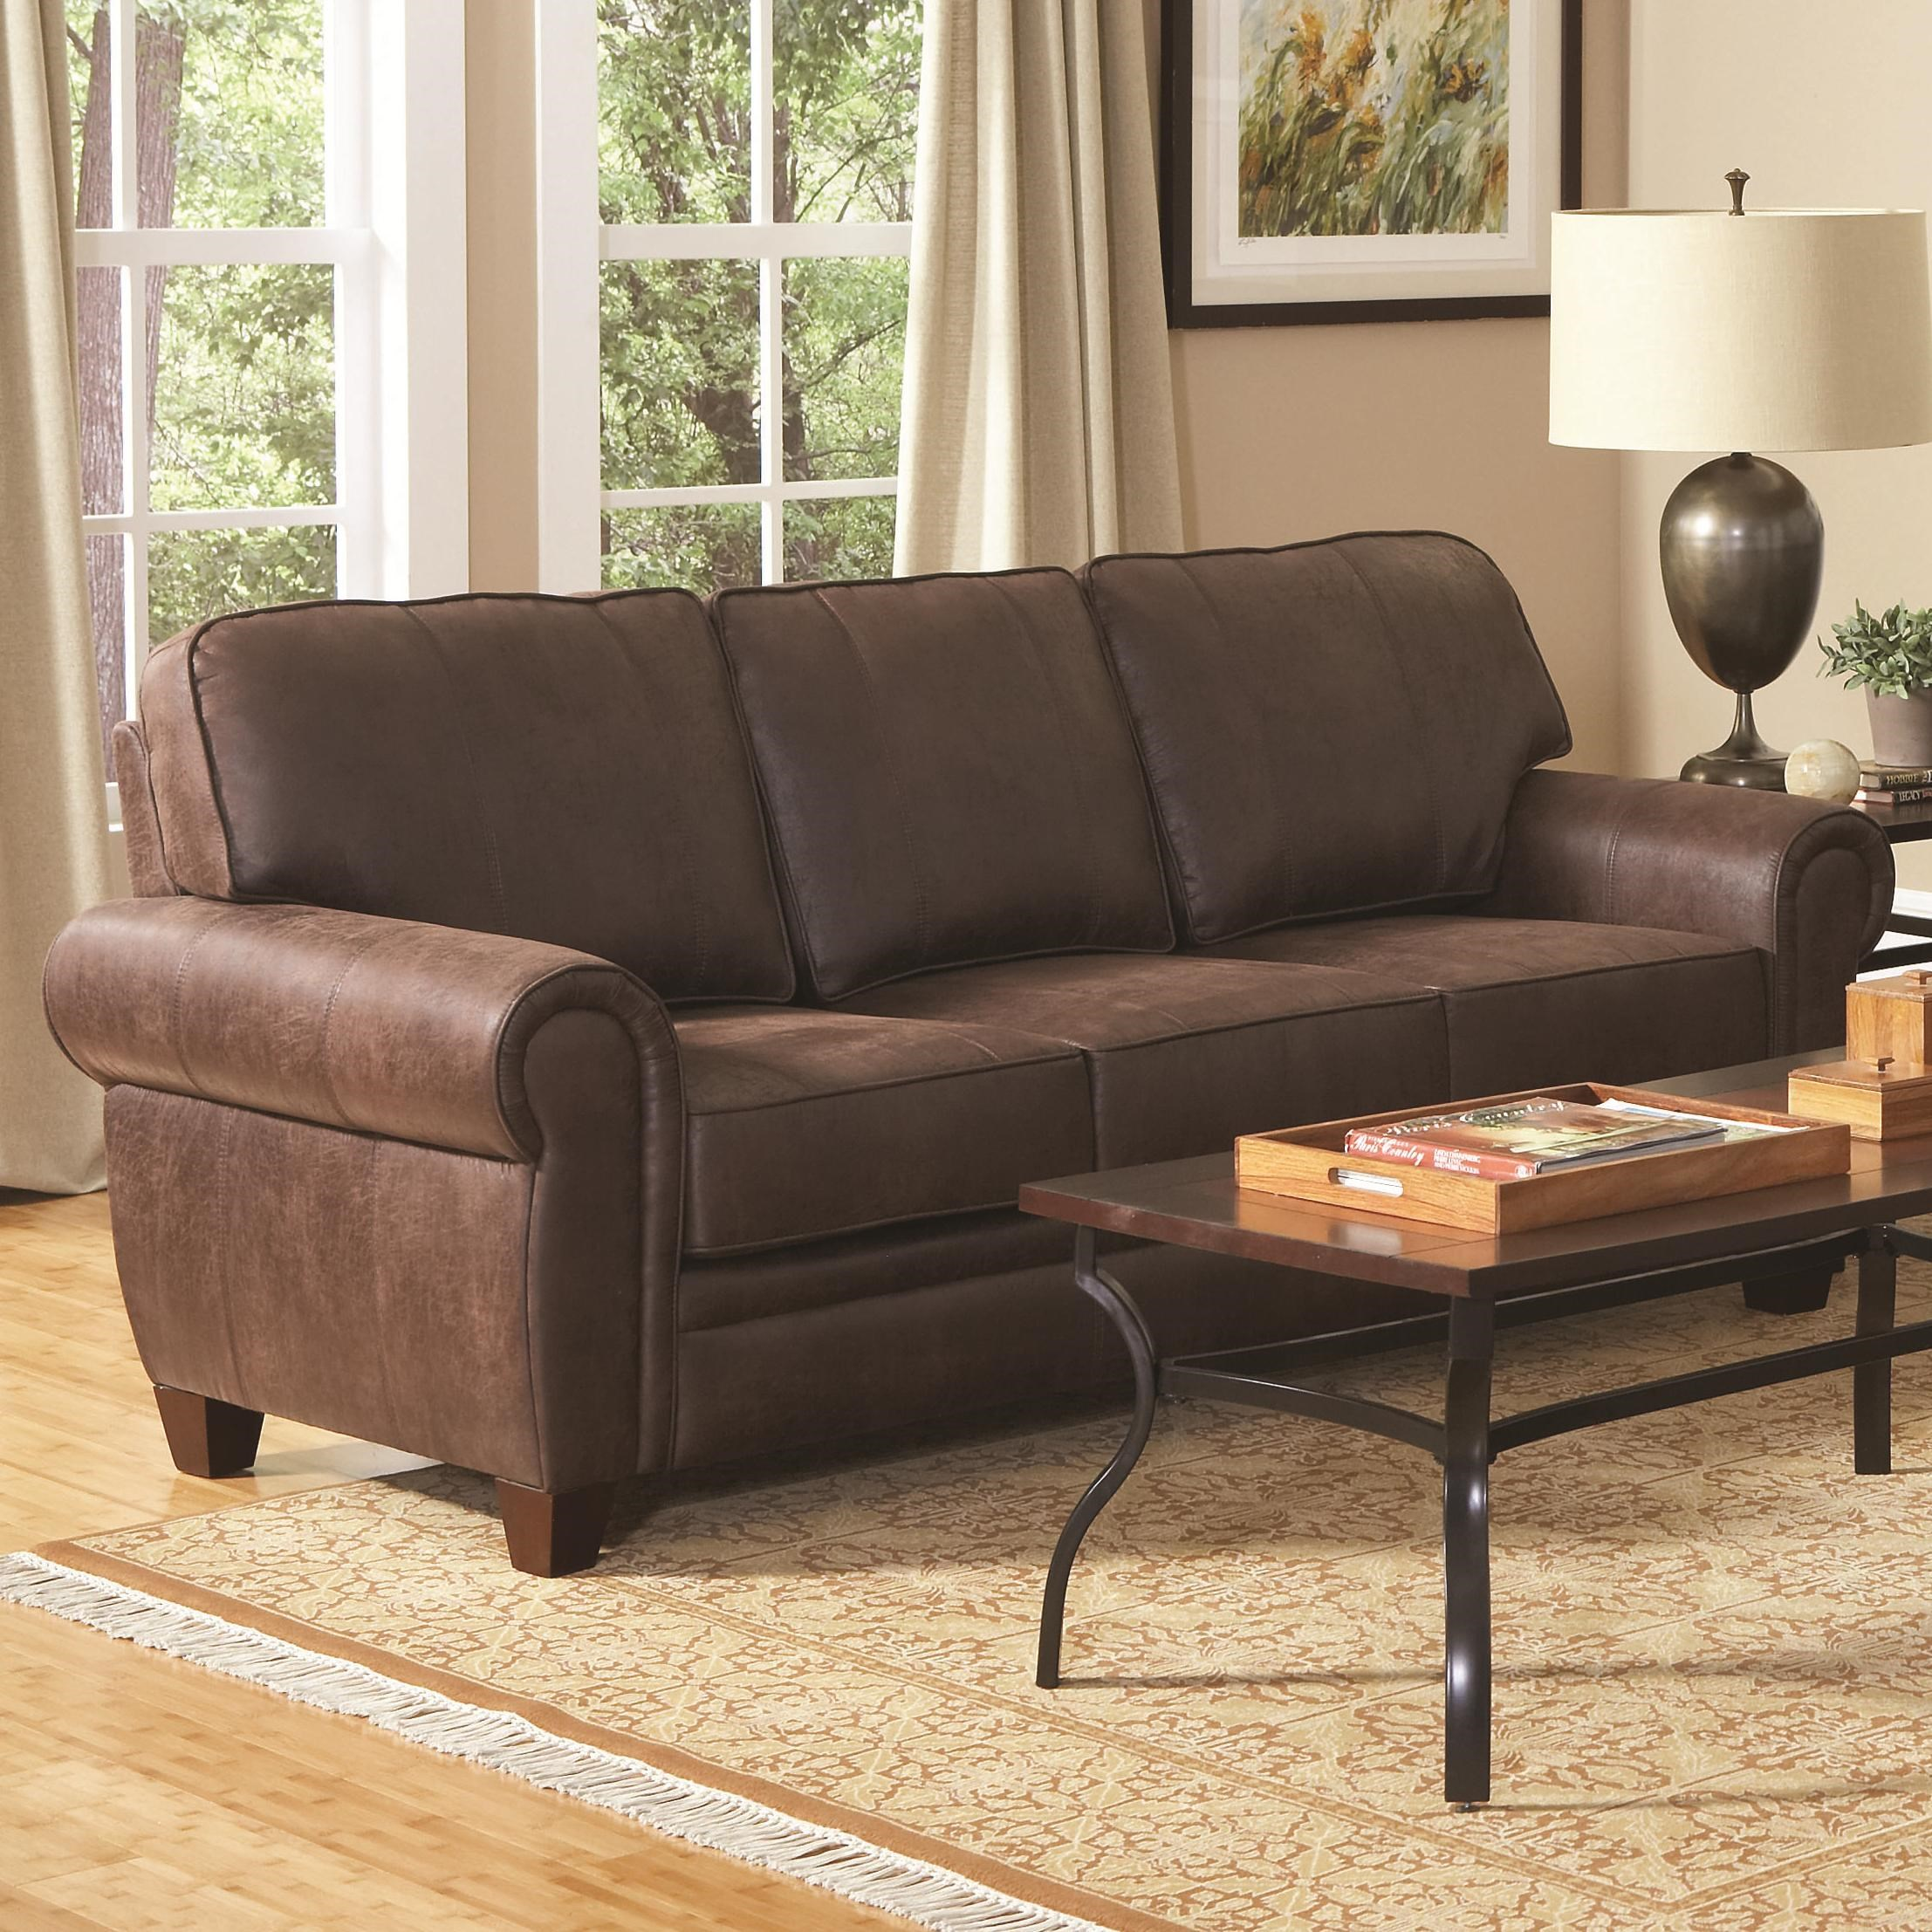 Coaster Bentley 504201 Elegant And Rustic Family Room Sofa | Lapeer  Furniture U0026 Mattress Center | Sofas